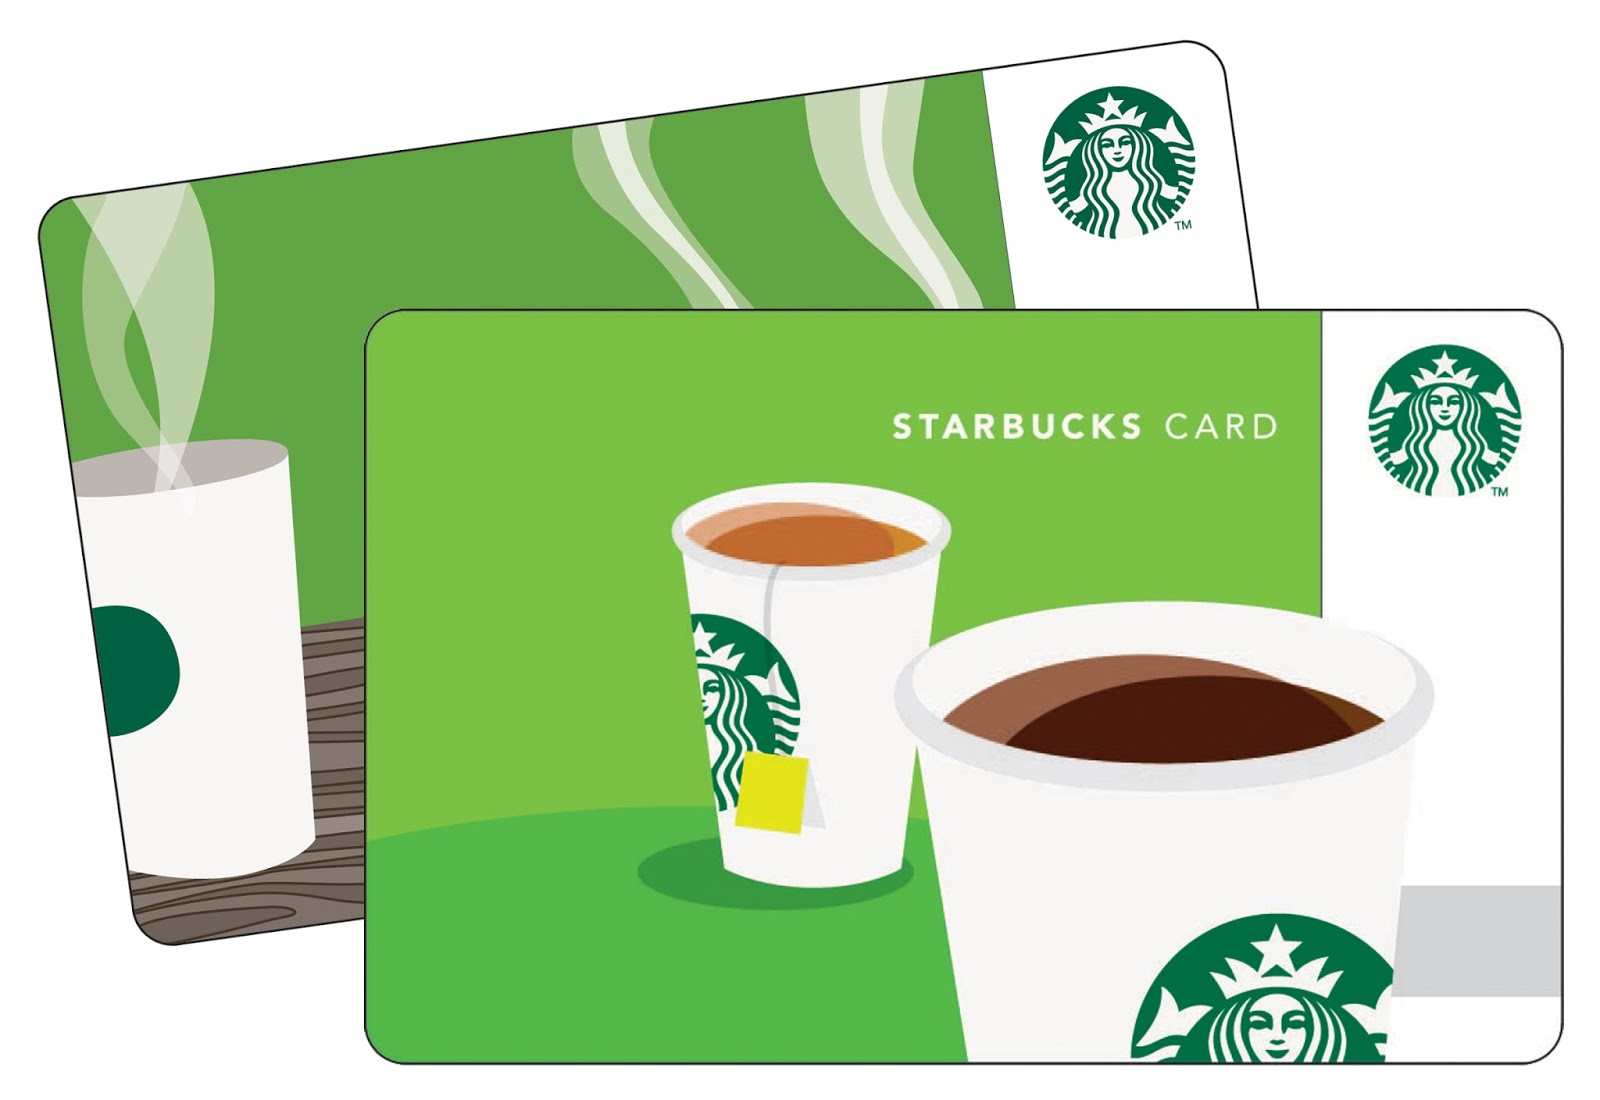 Starbucks Card and its Rewards